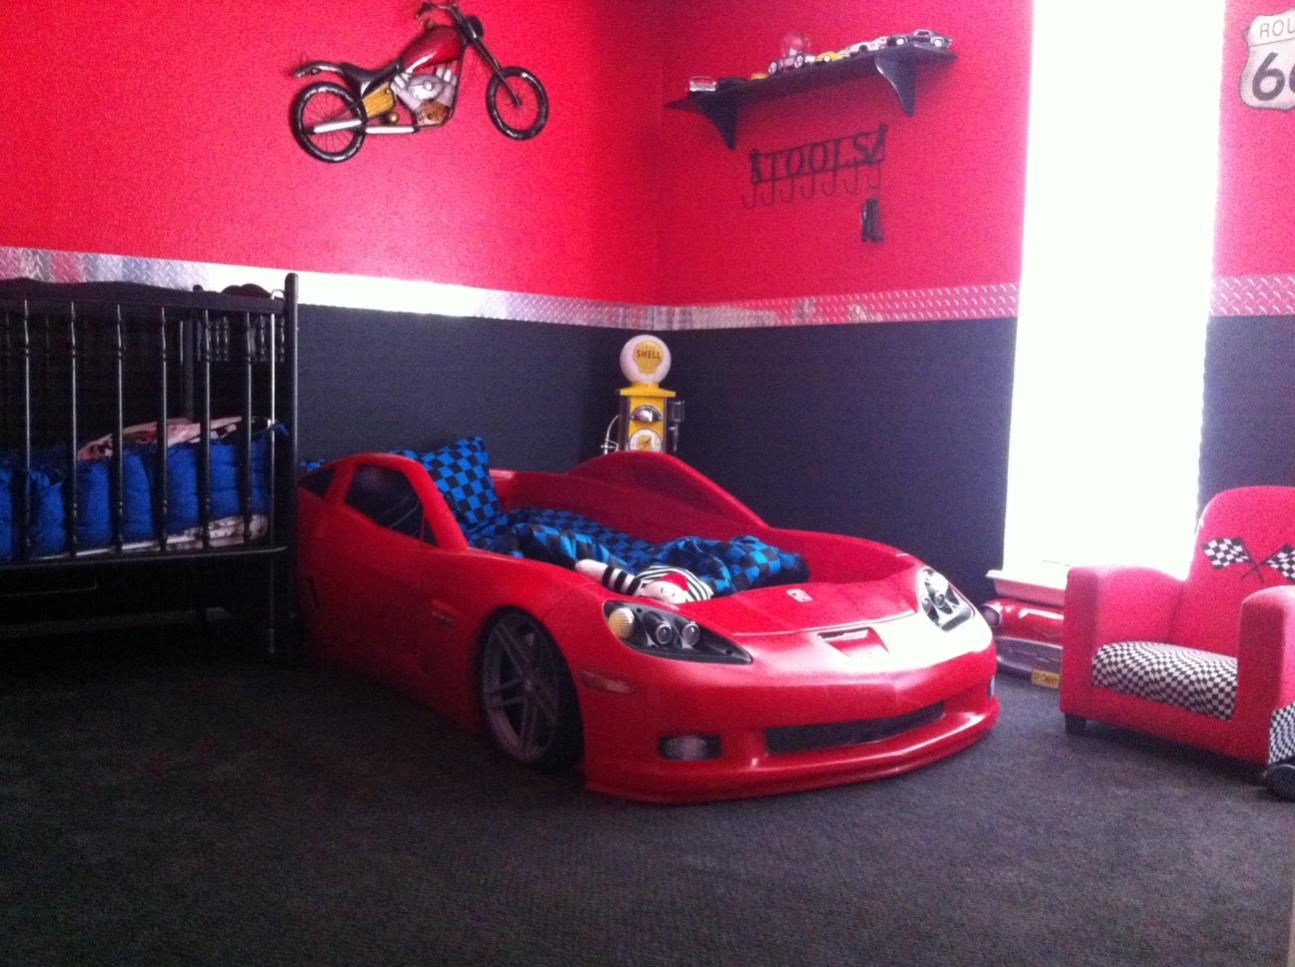 Boys car bedroom ideas - Levis Room Corvette Bedding Set Just Bought The Kid A New Corvette Car Bedroombedroom Kidstoddler